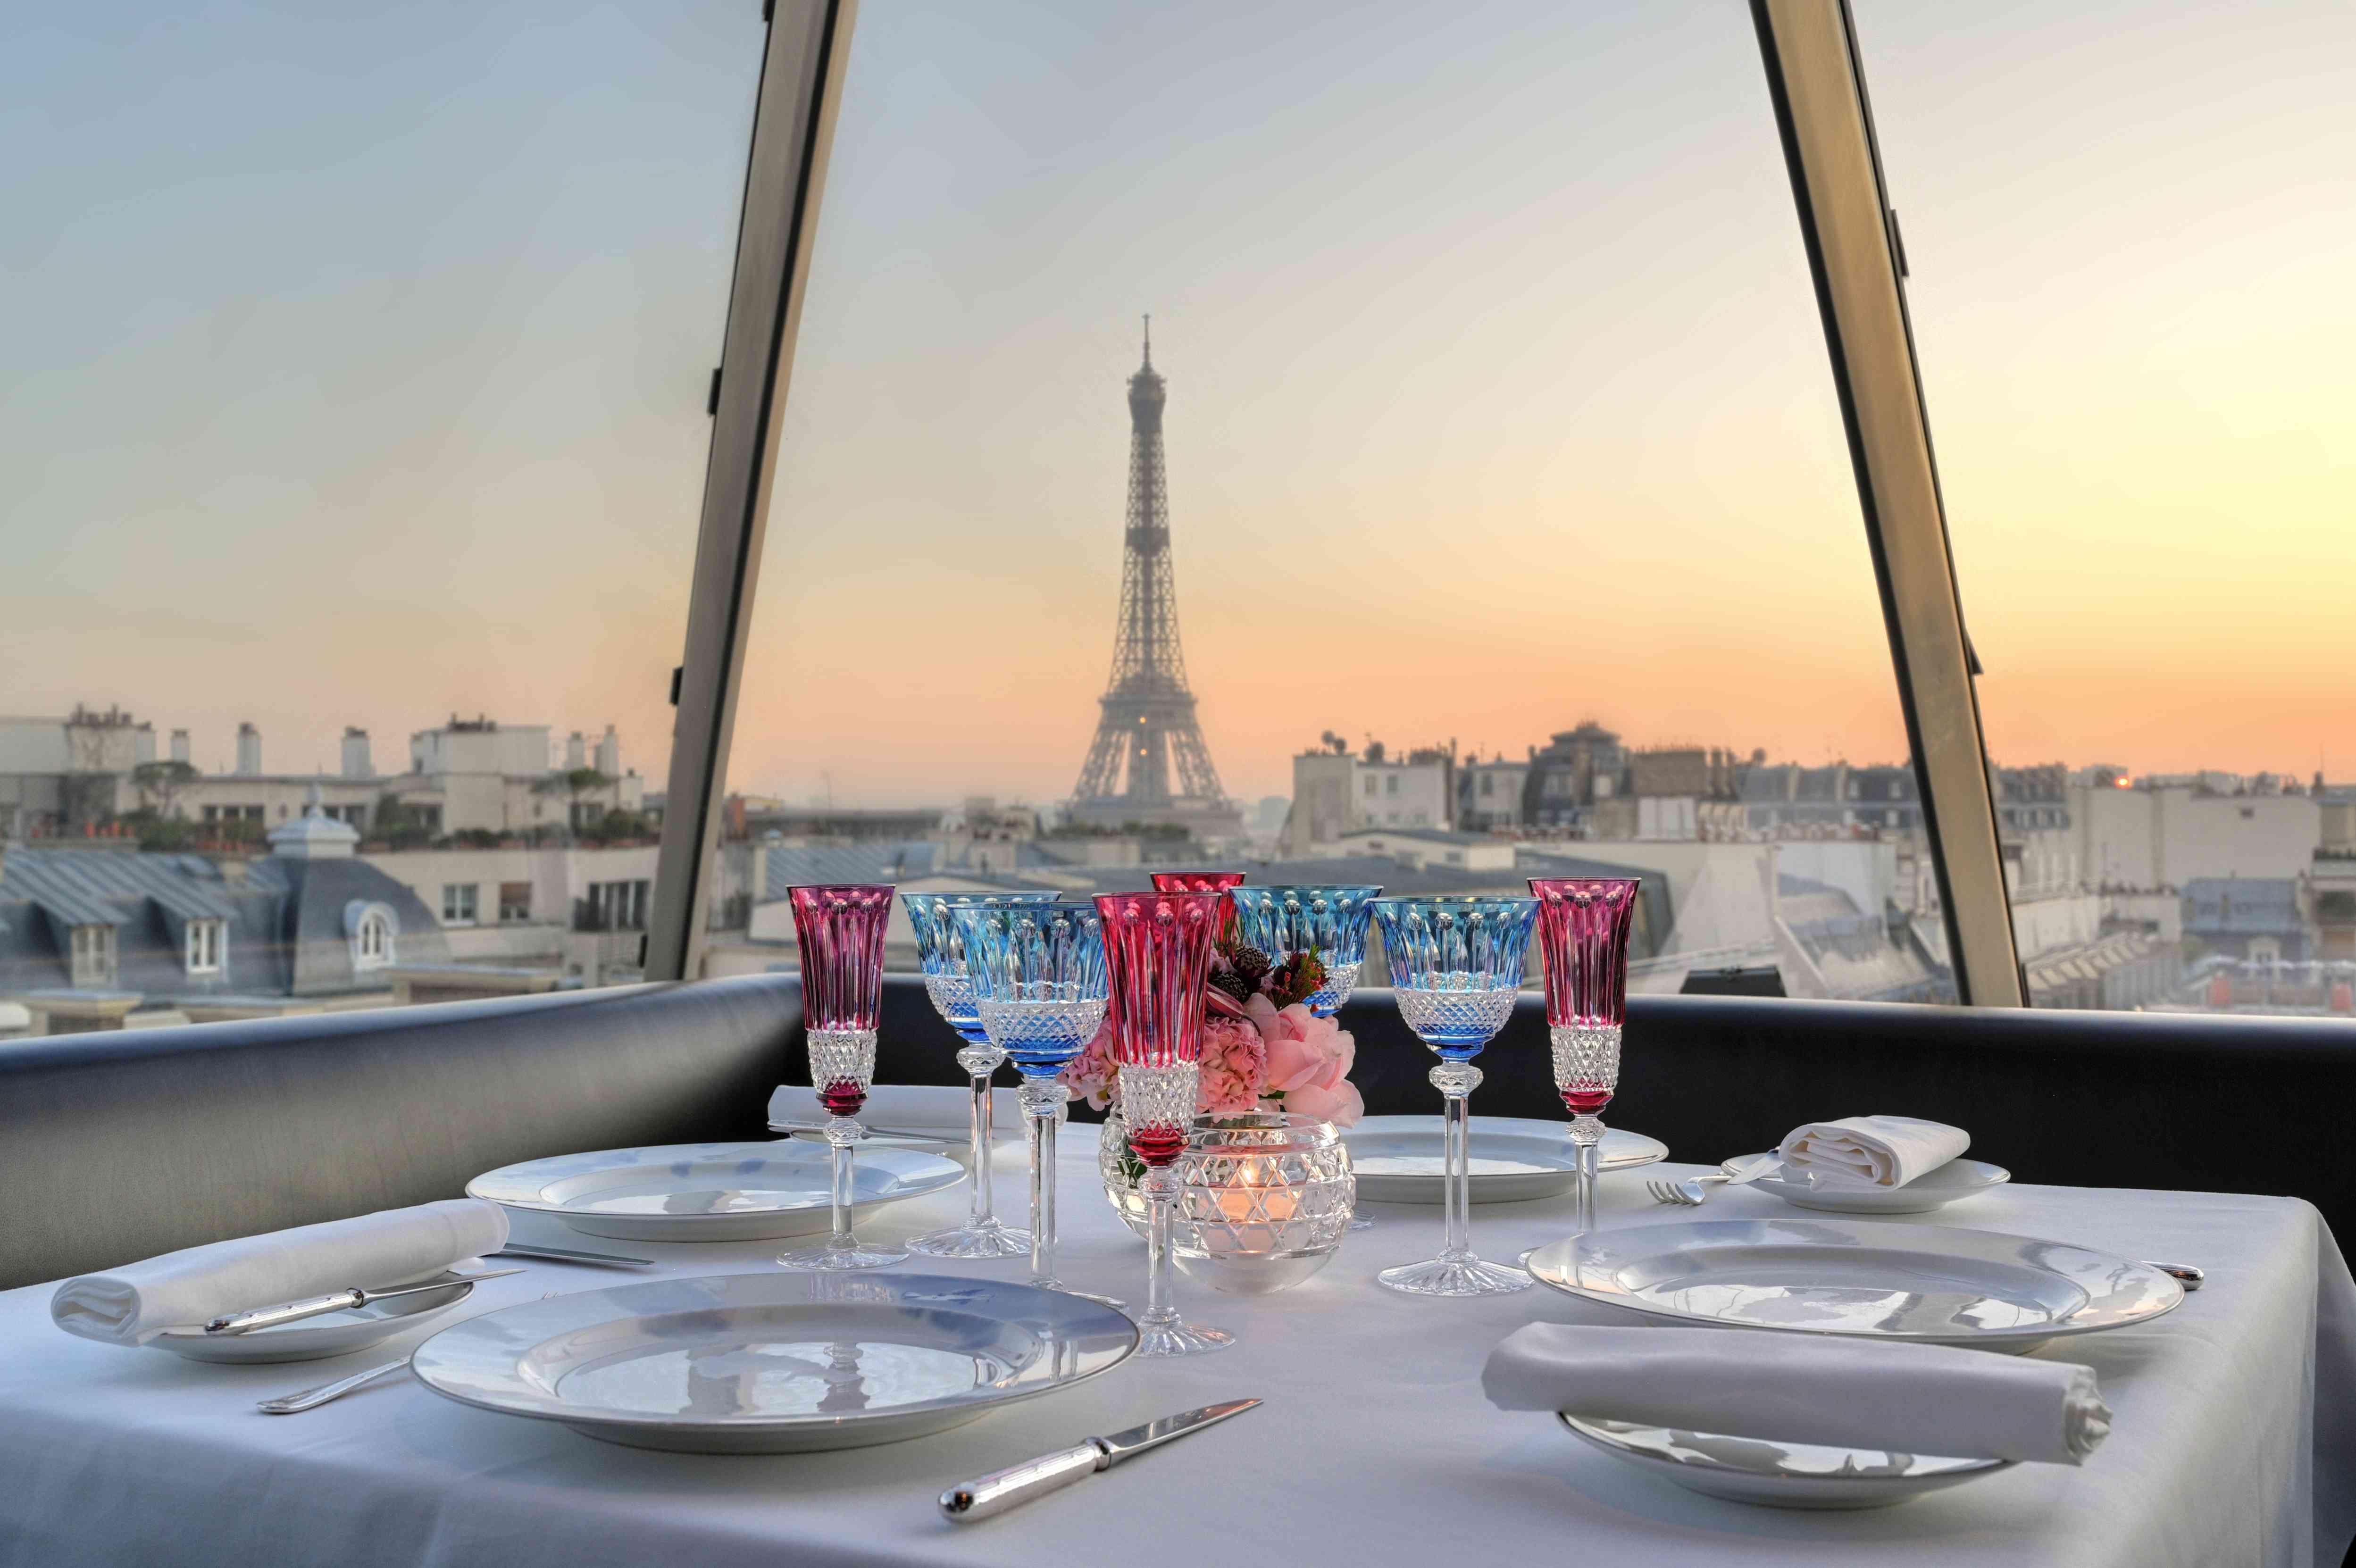 Dinner table with blue and pink glassware in front of window with view of Eiffel Tower at sunset